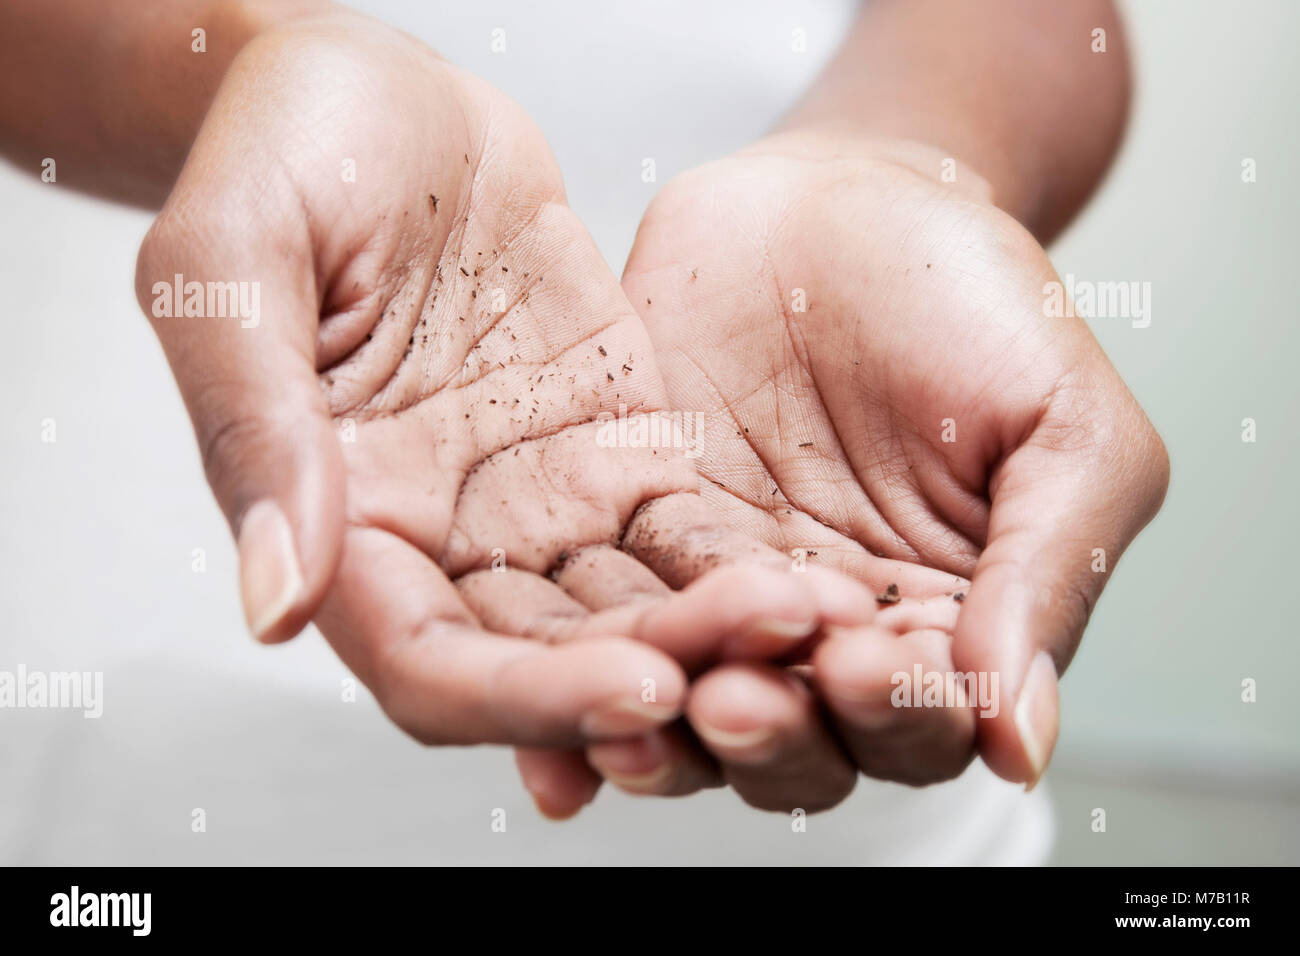 Mid section view of a woman showing her dirty hands - Stock Image